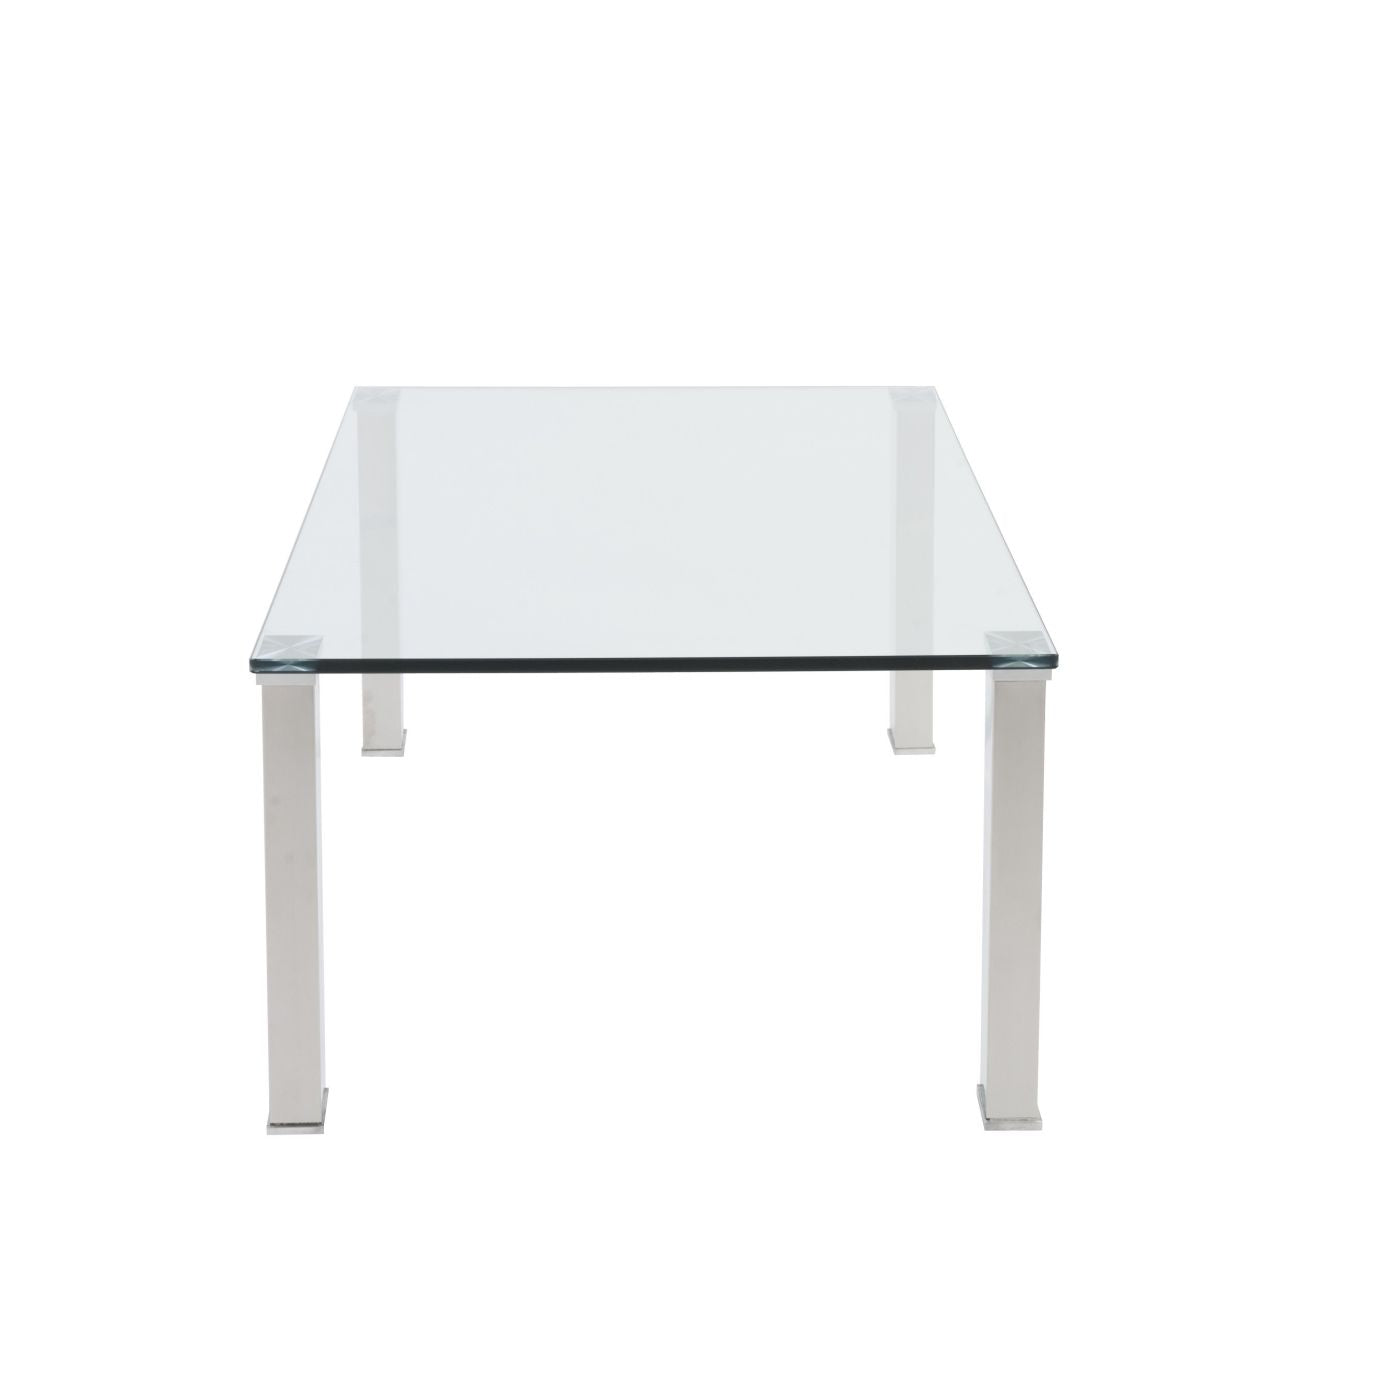 Glass Coffee Table With Stainless Steel Legs: Buy Euro Style EURO-38701-KIT Beth Rectangle Coffee Table